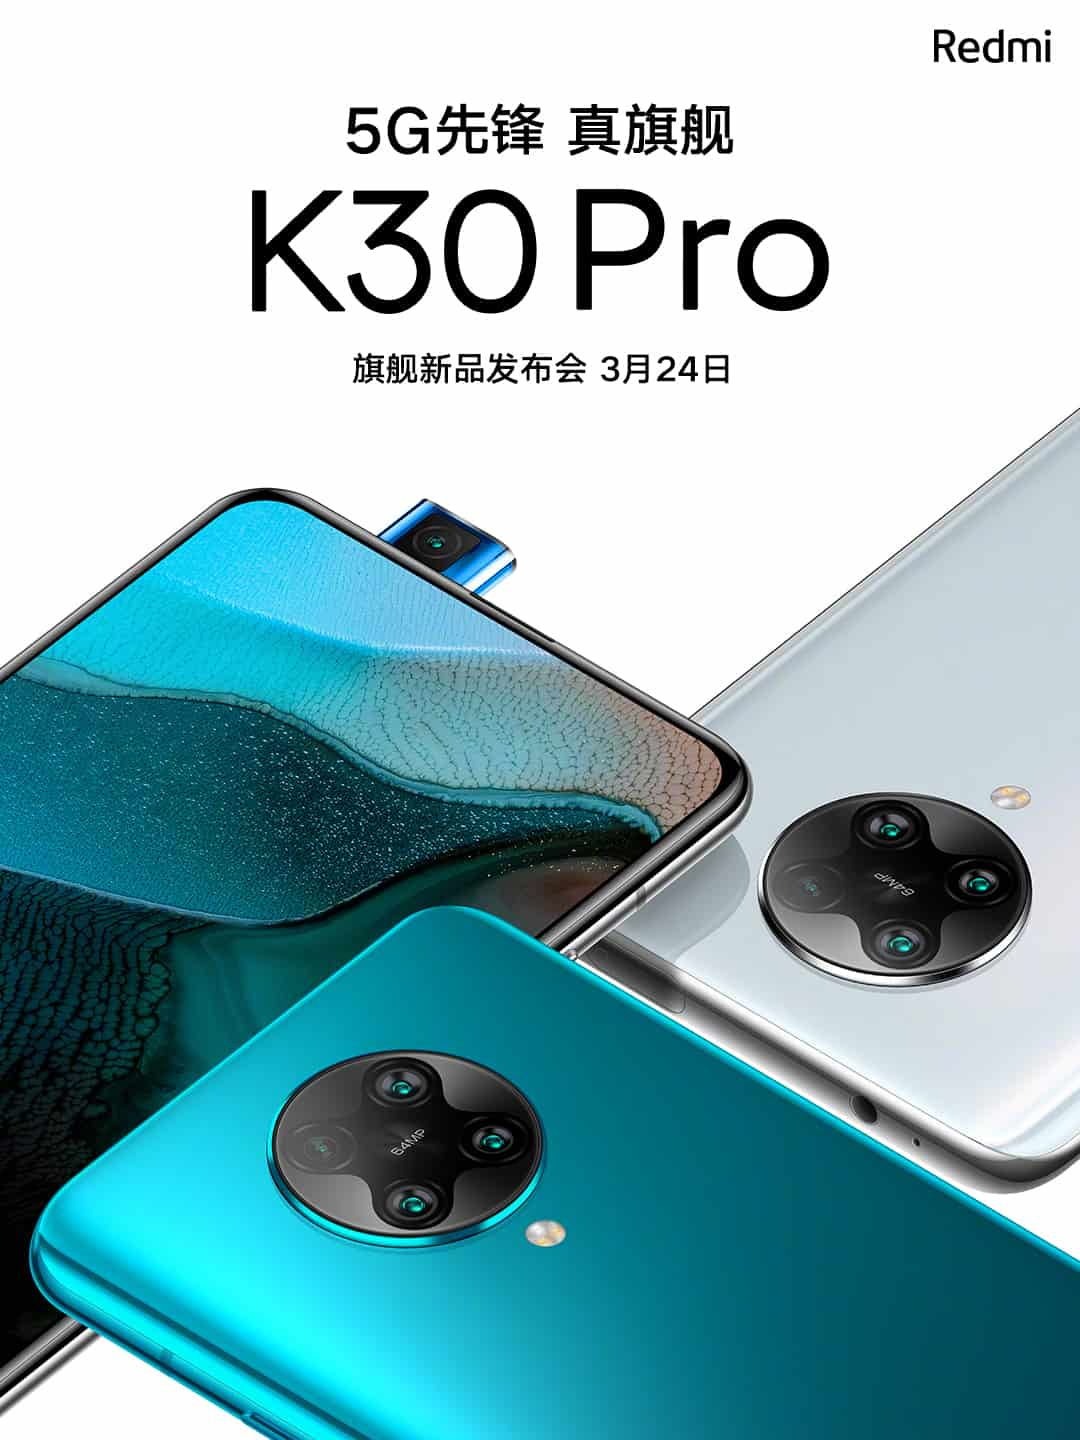 Redmi K30 Pro two color variants and front side